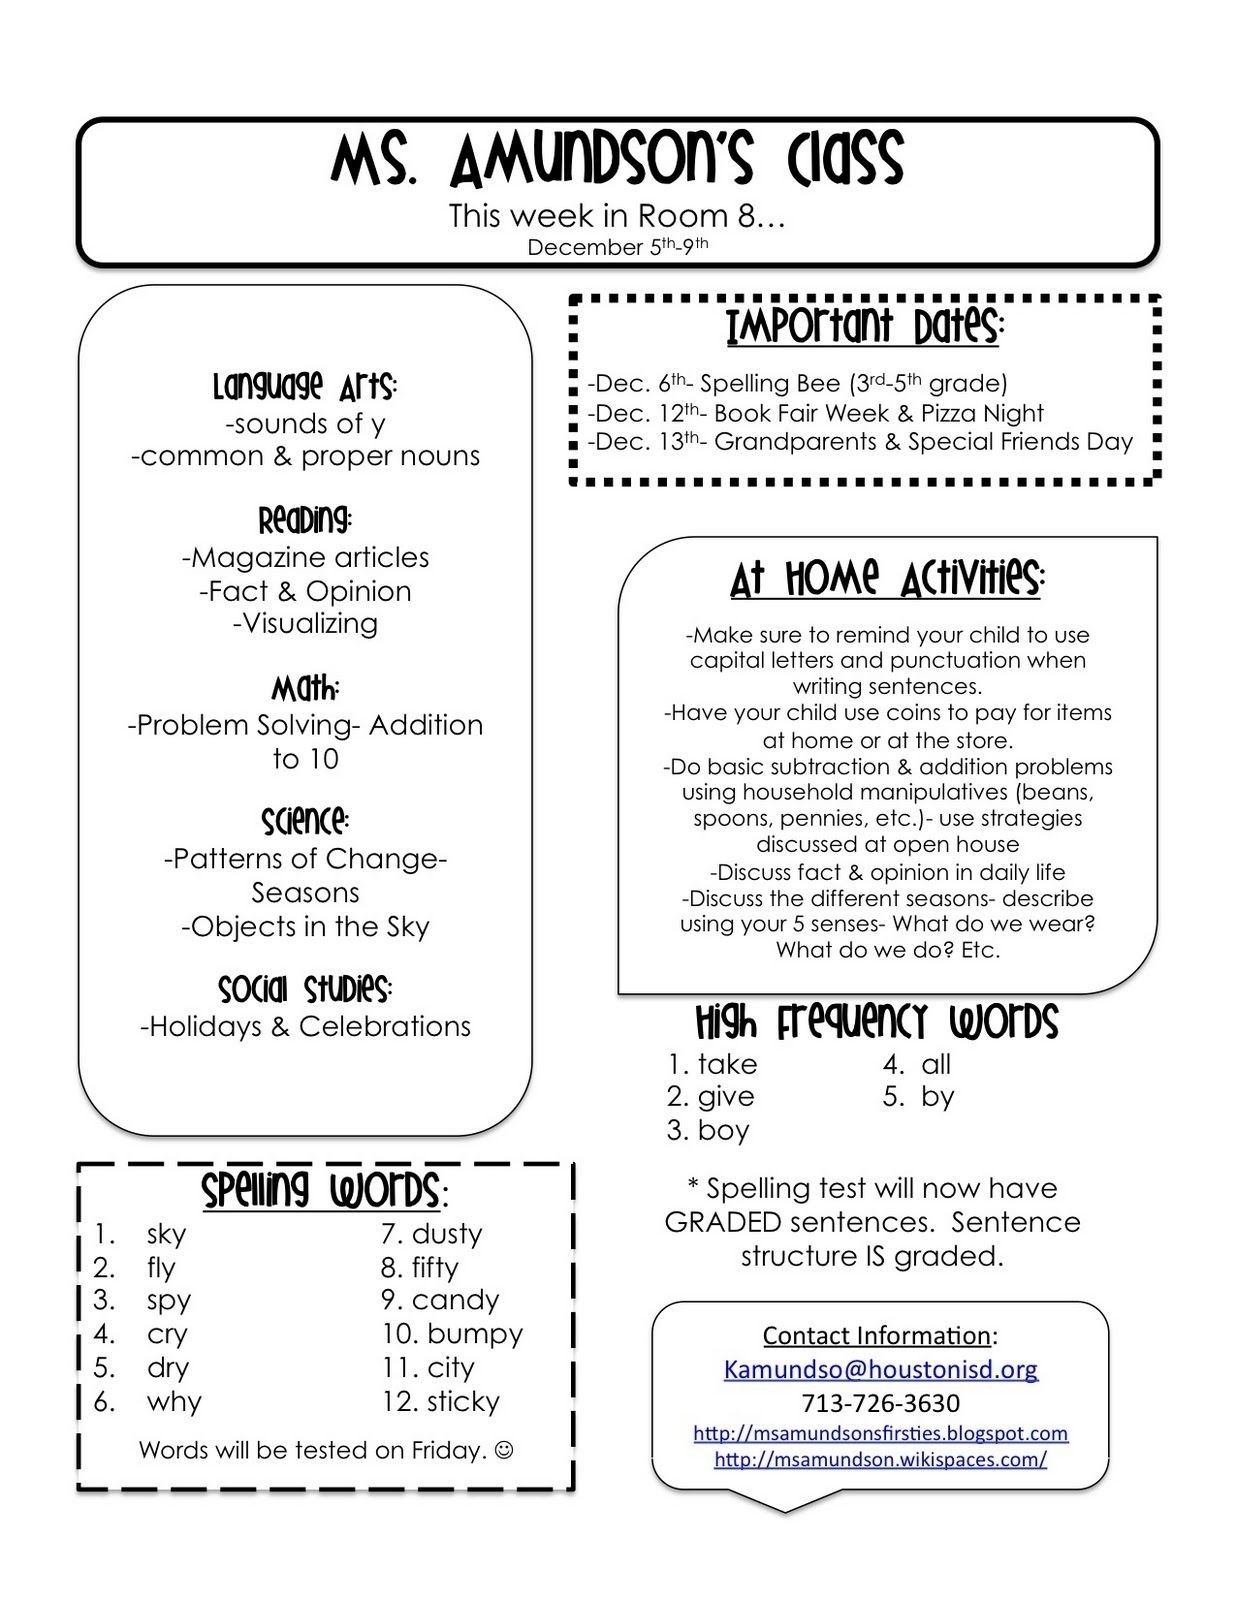 Tutoring Template To Fill Out Weekly   Template Calendar Printable inside Tutoring Template To Fill Out Weekly